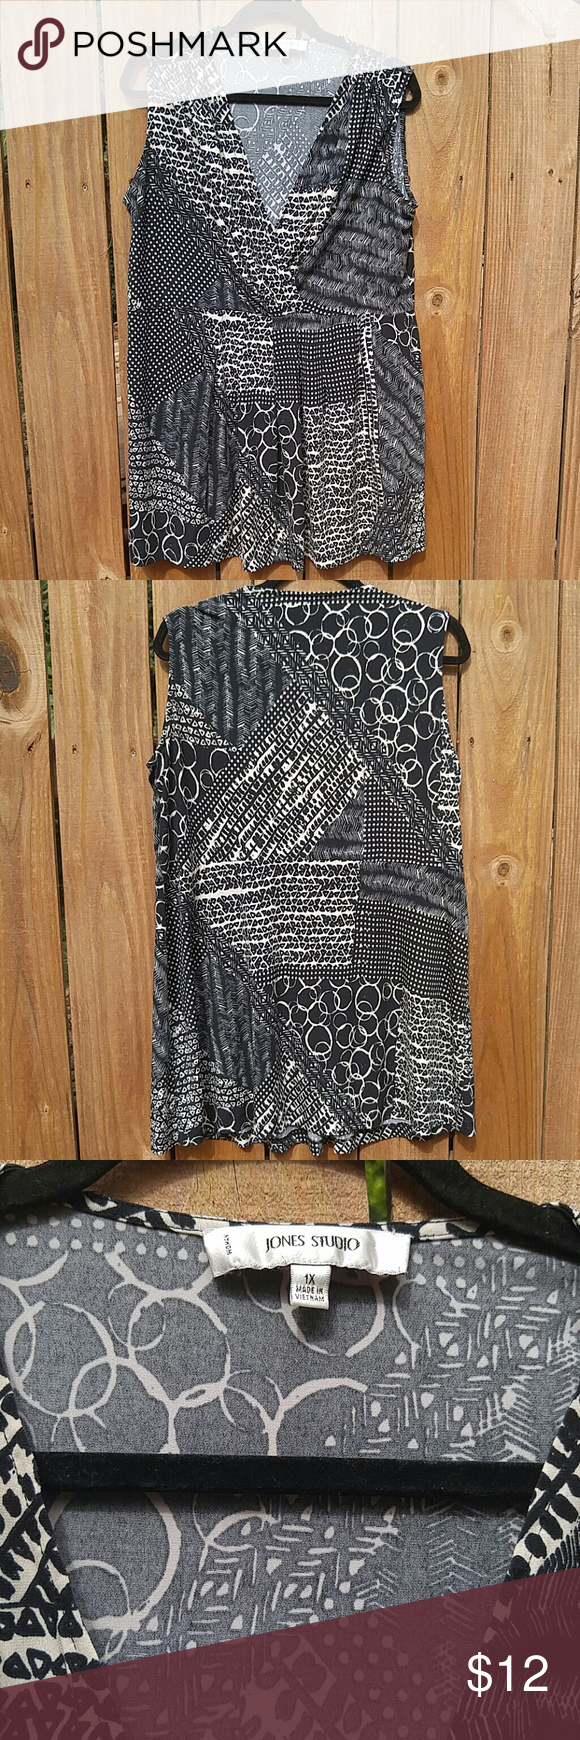 Black and Cream Abstract Sleeveless Top Unique and stylish, this blouse features a mix of abstract designs in black and cream.  Has small gathers at the shoulders, a draped deep v-neck, and an almost empire style waist.  Size 1X, but very stretchy polyester spandex blend ( might even work for 2X). Excellent pre-owned condition.   Extremely flattering and great for pairing with cardigans or blazers and a statement necklace. Jones Studio Tops Blouses